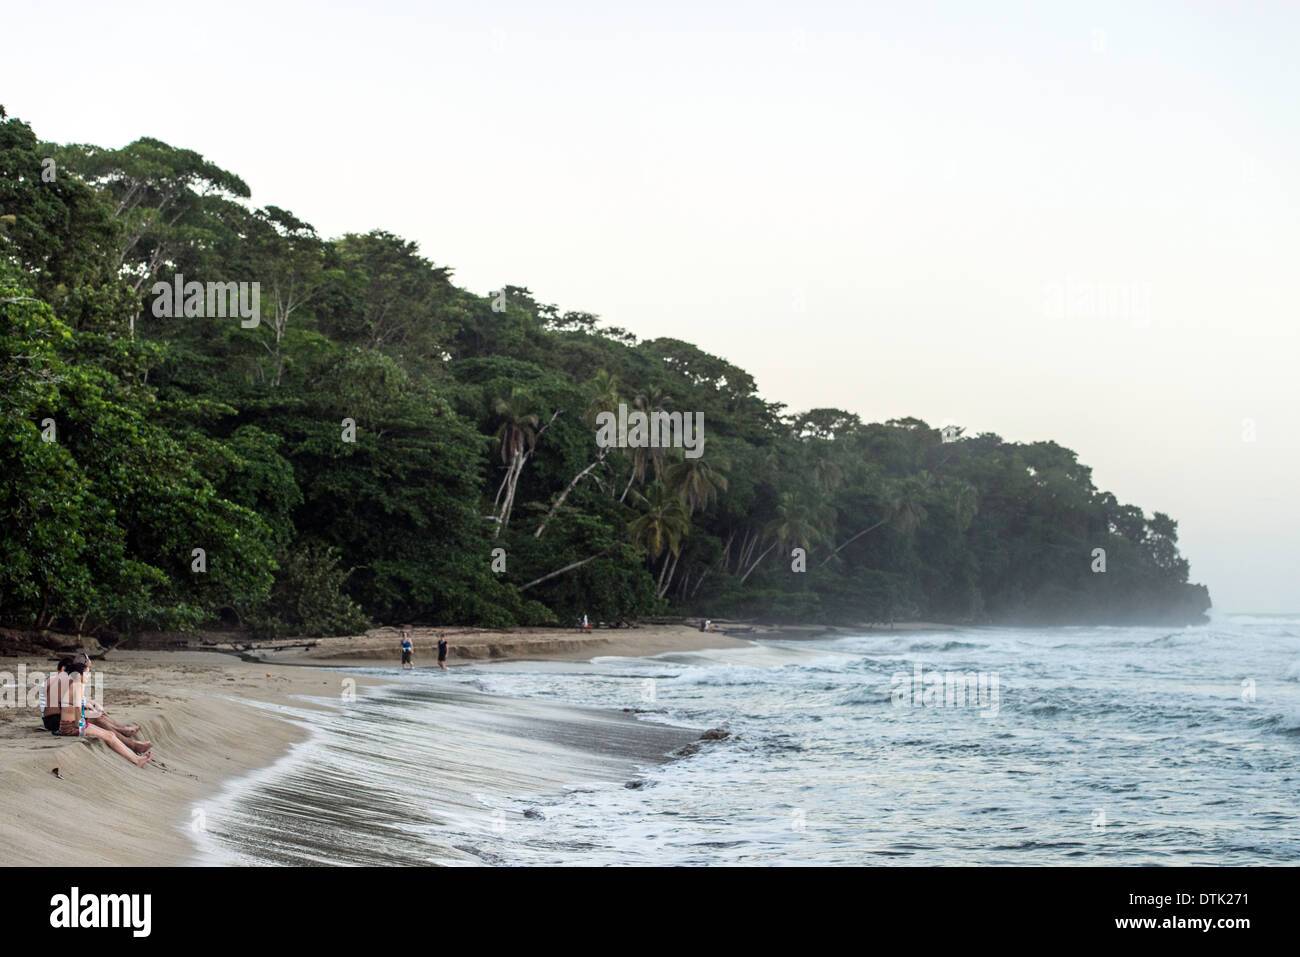 Les touristes sur la plage Puerto Viejo, Costa Rica Photo Stock